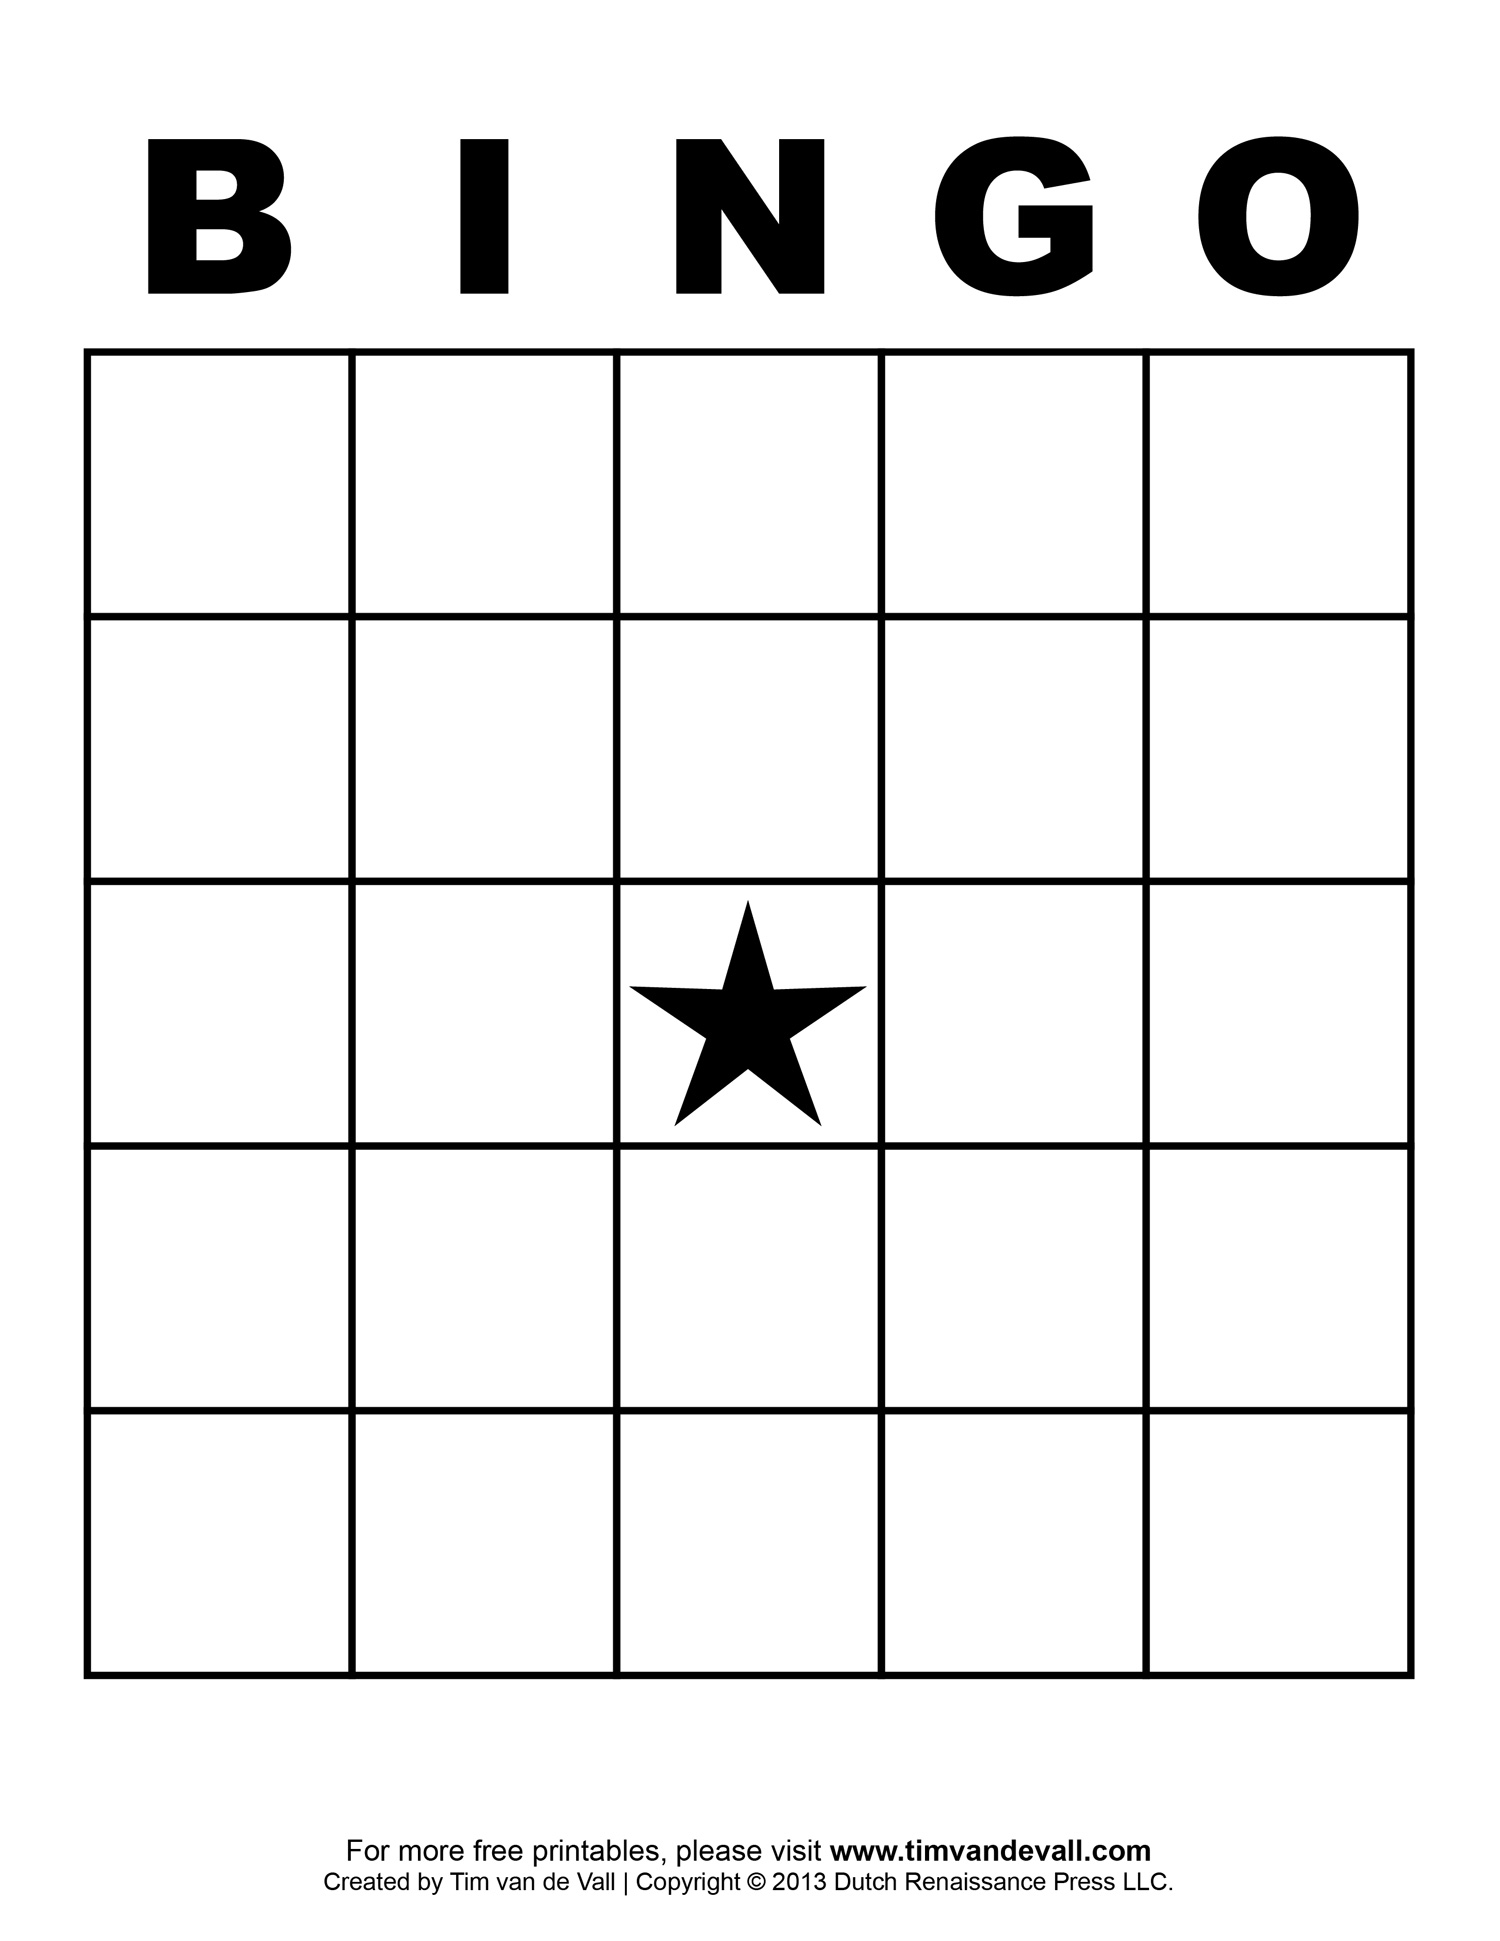 picture relating to Printable Bingo Chips identify Cost-free printable bingo playing cards pdfs with figures and tokens